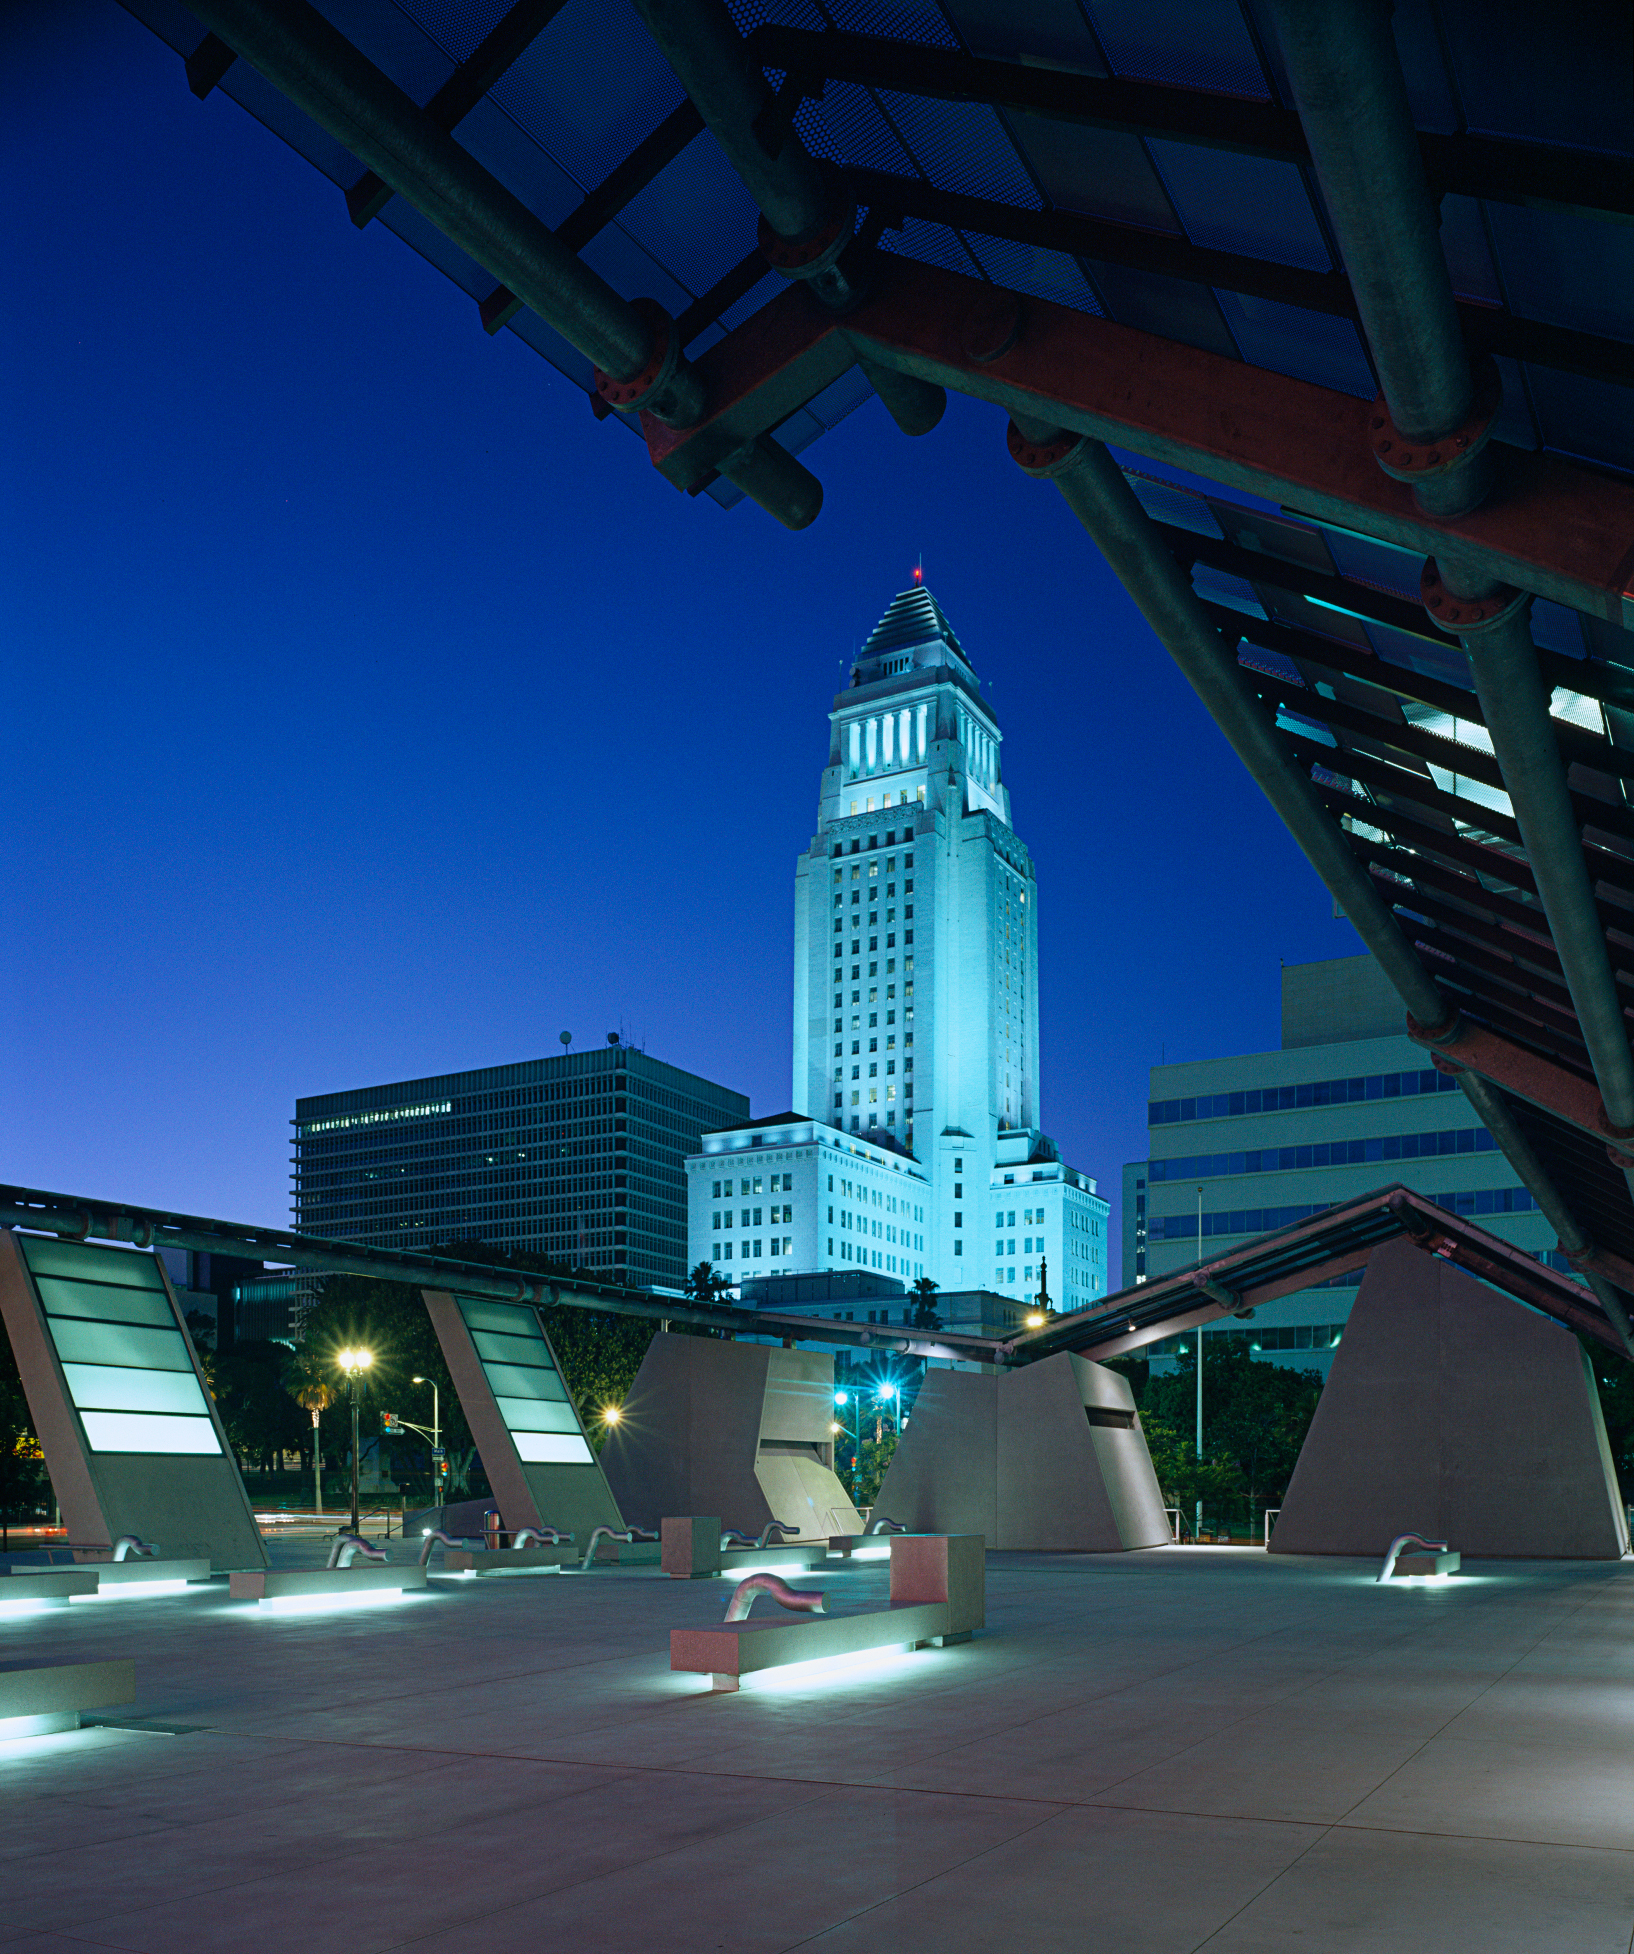 Cal-Trans_City-Hall-001.jpg